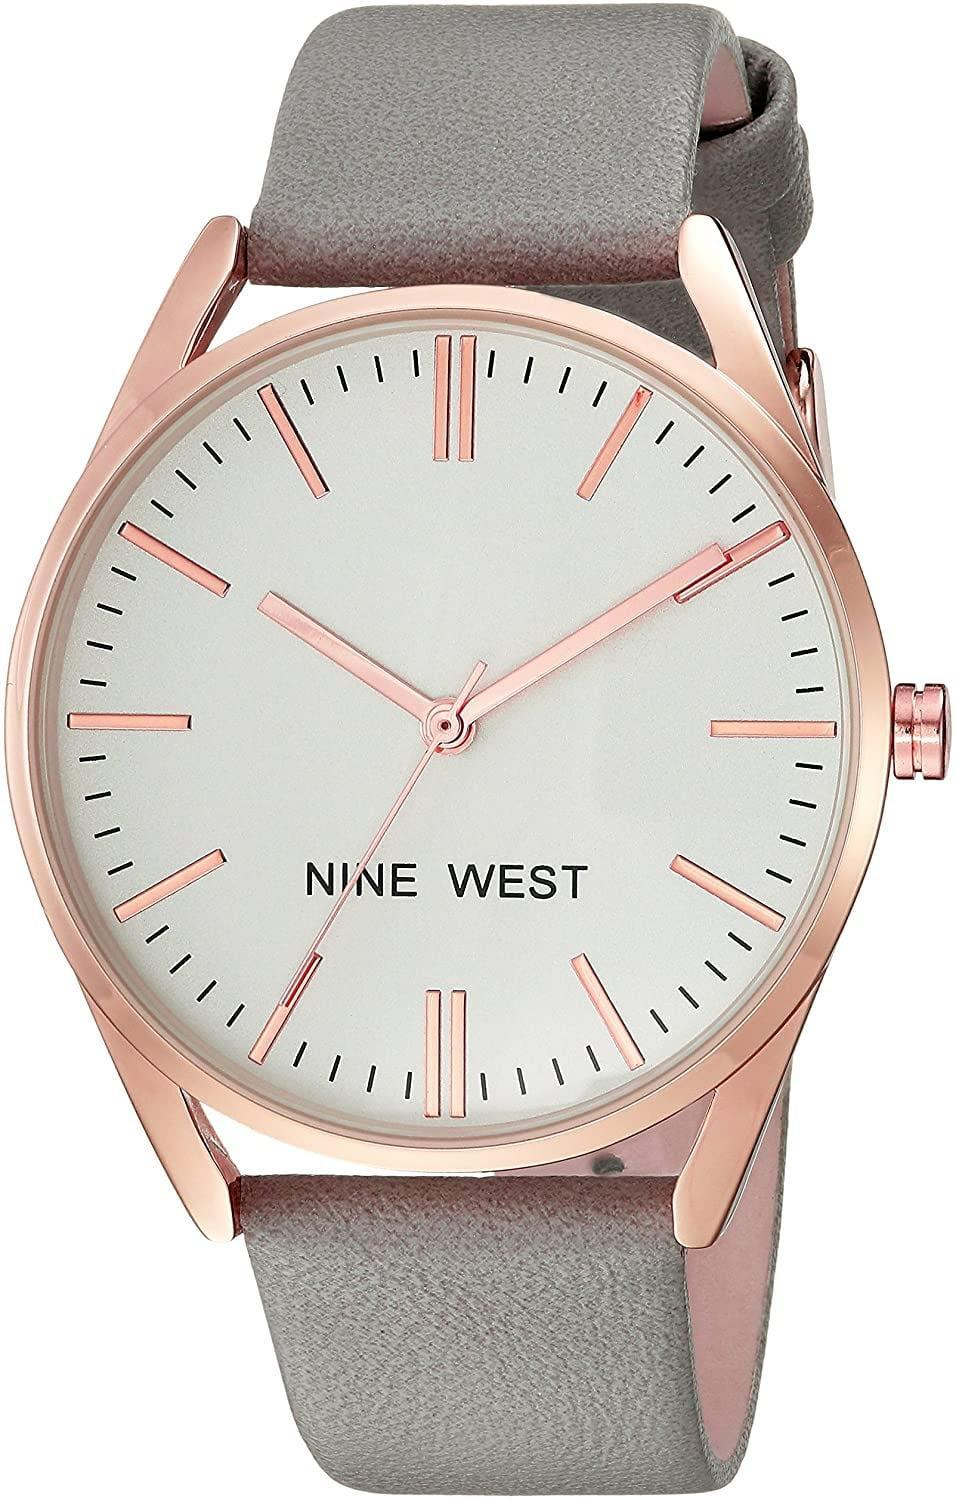 <p>This stylish <span>Nine West Strap Watch</span> ($31) is an incredibly good deal.</p>